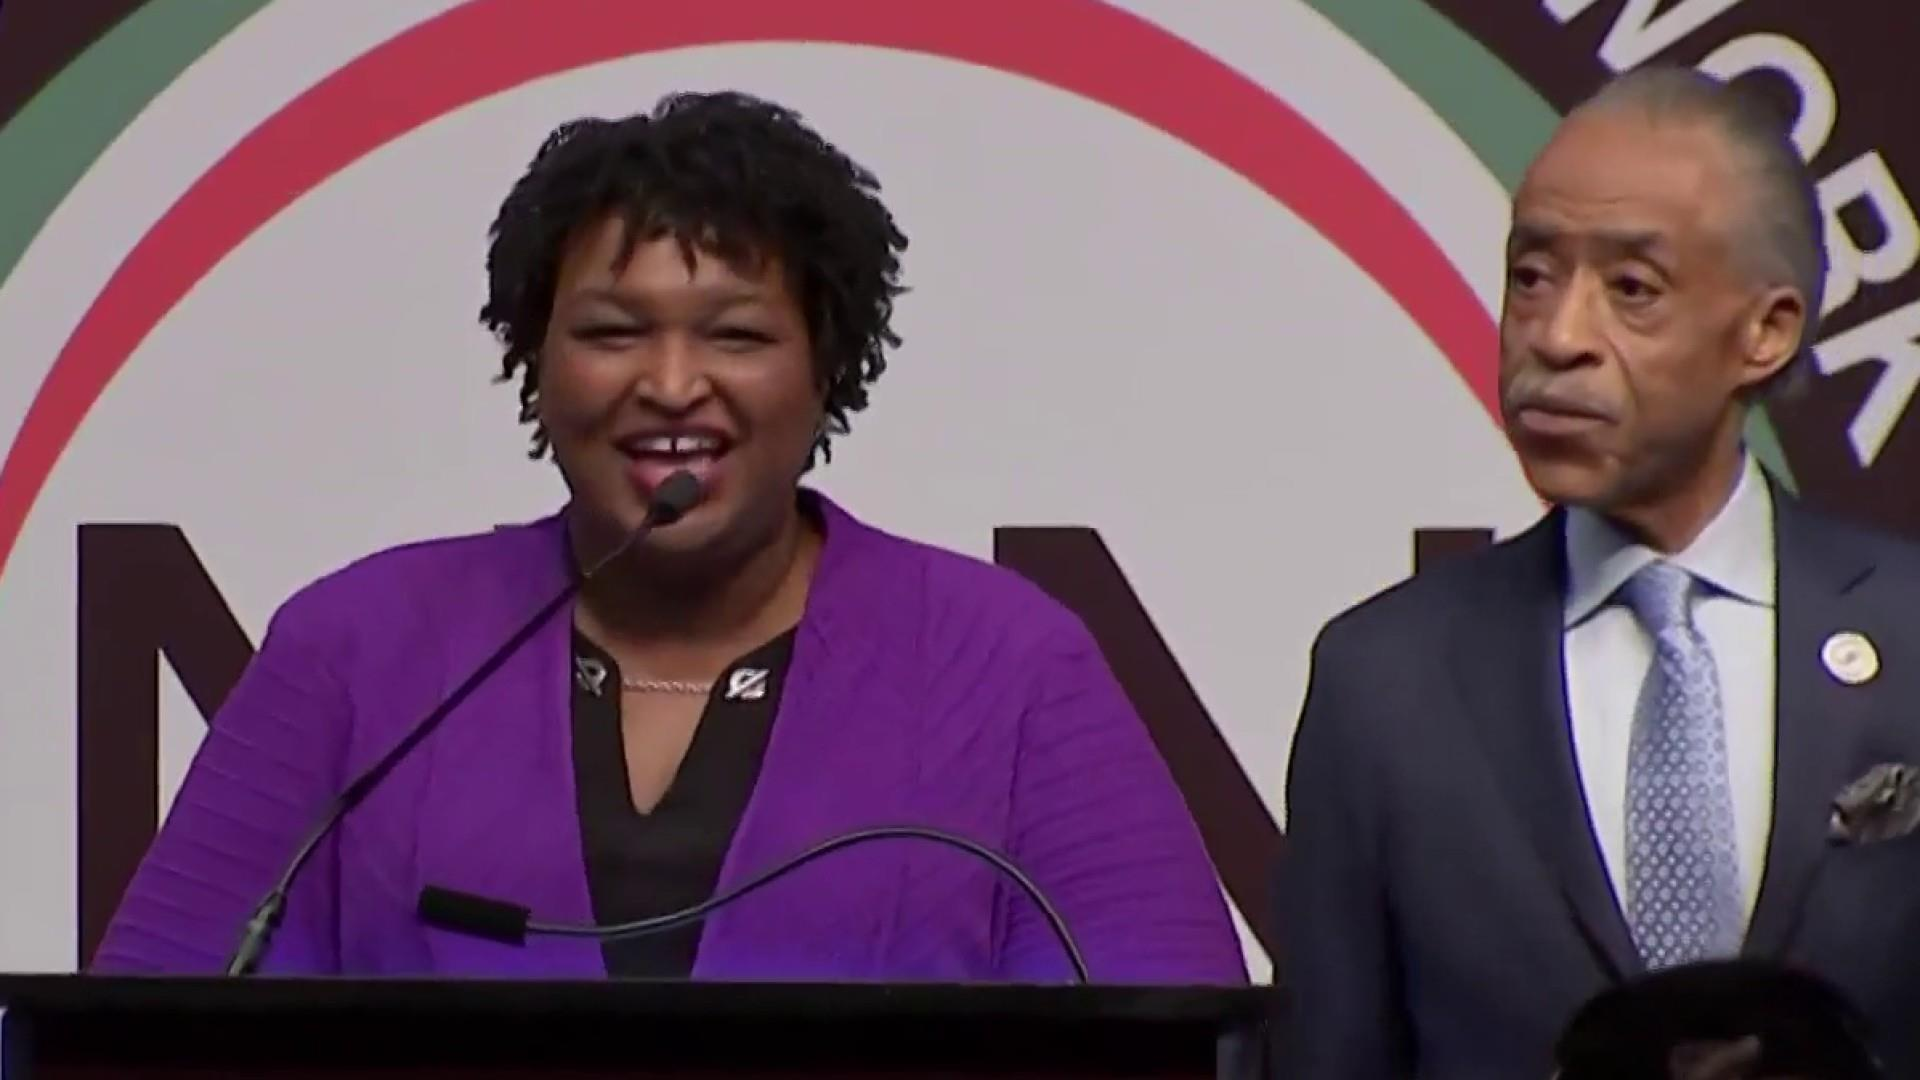 Stacey Abrams could be a kingmaker or queenmaker in 2020